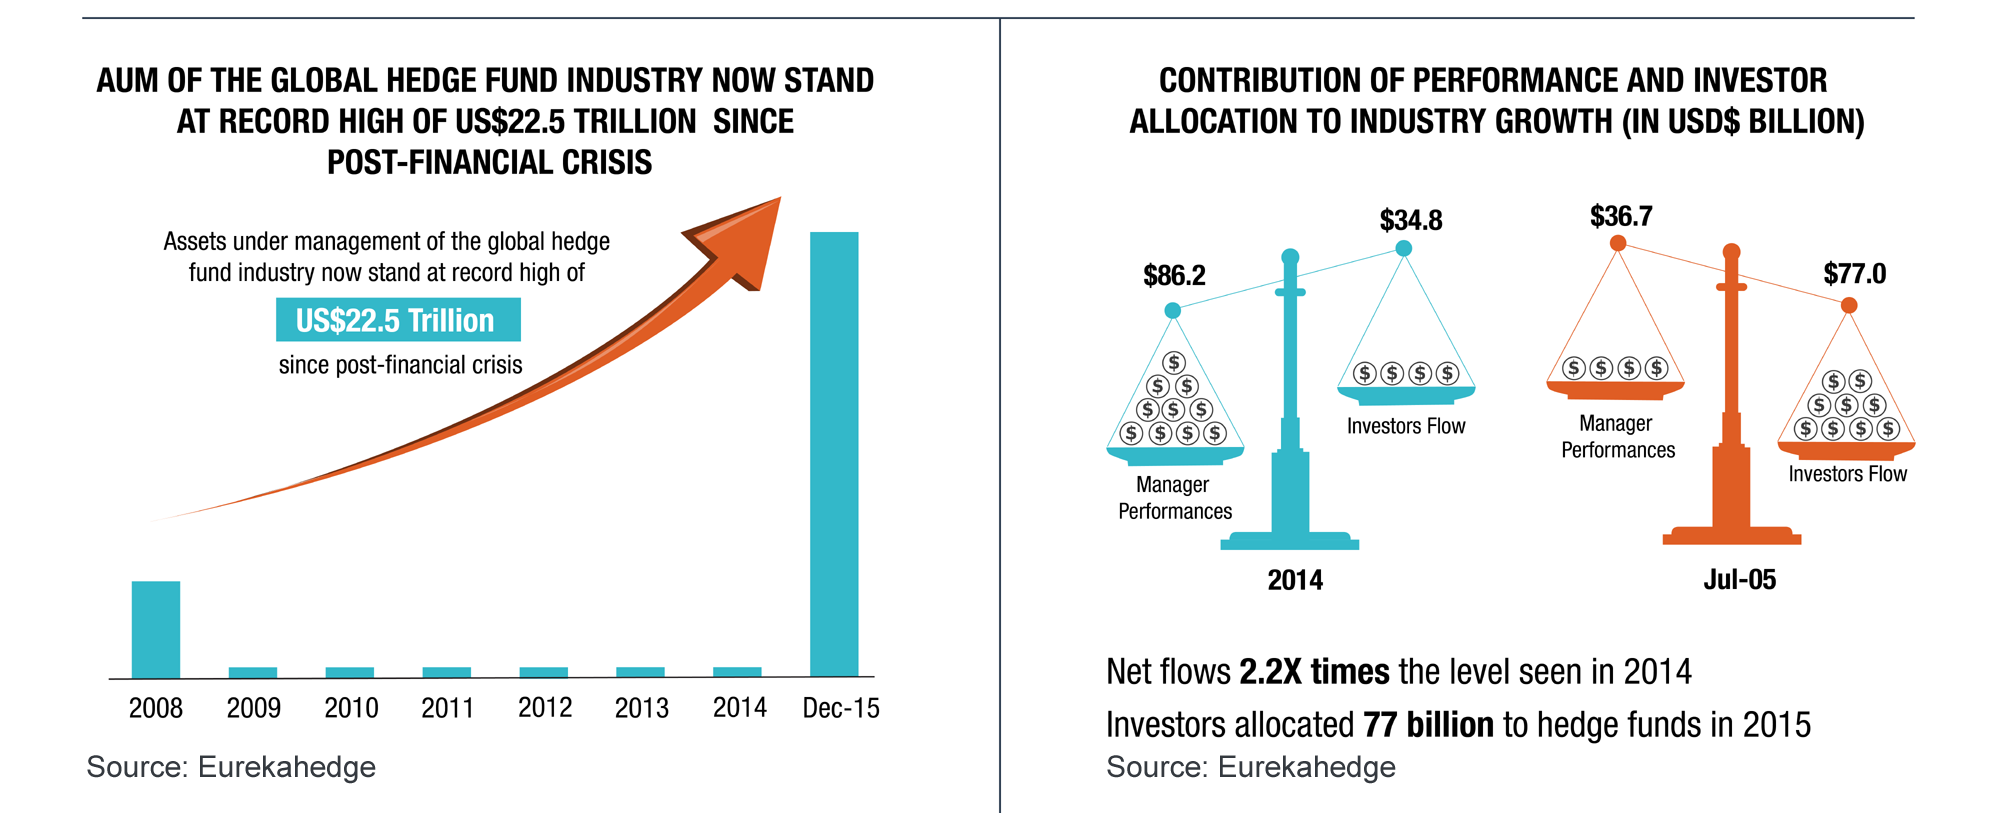 Hedge Funds 2015 Overview Infographic - Hedge fund investor allocations